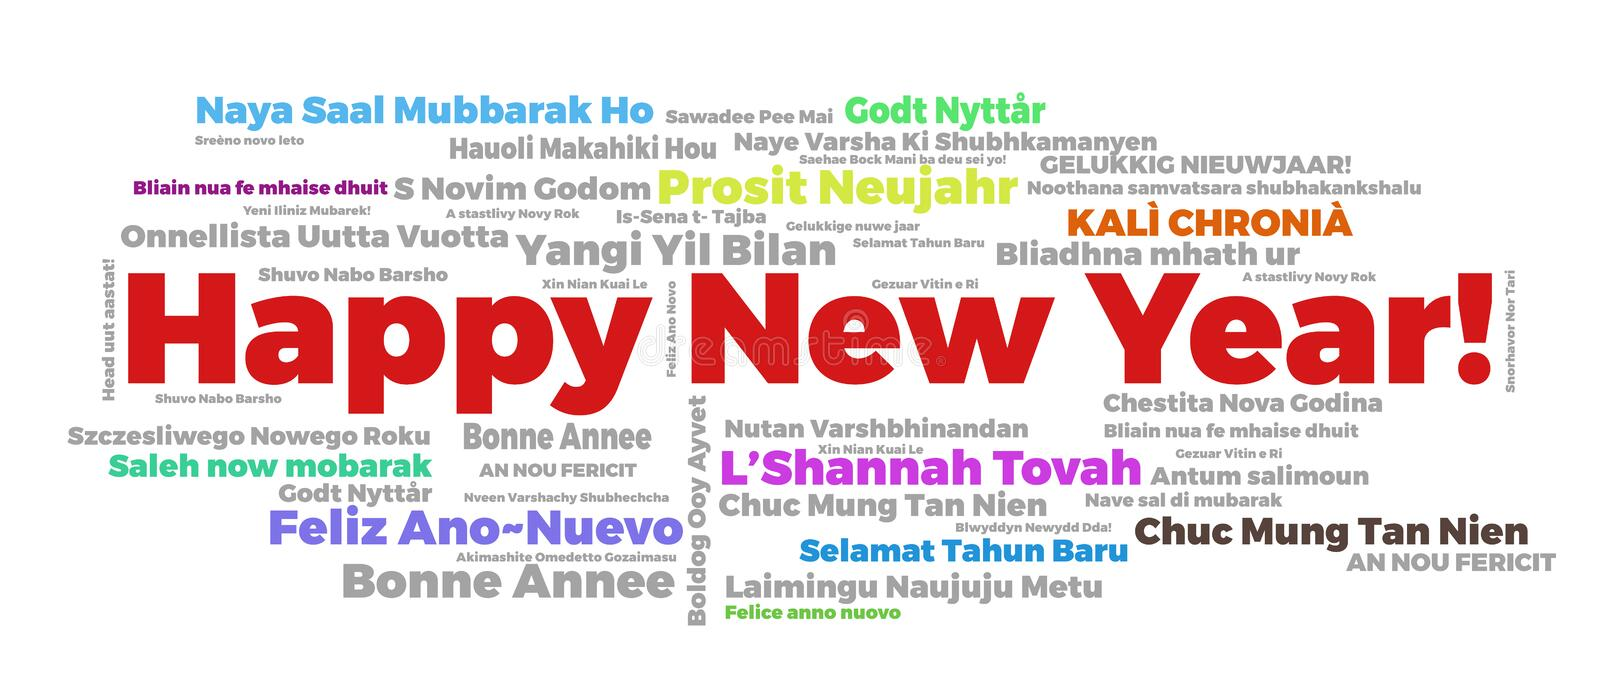 Happy New Year words cloud. The phrase Happy New Year in different languages with the more widely spoken in bigger fonts, in white background royalty free illustration